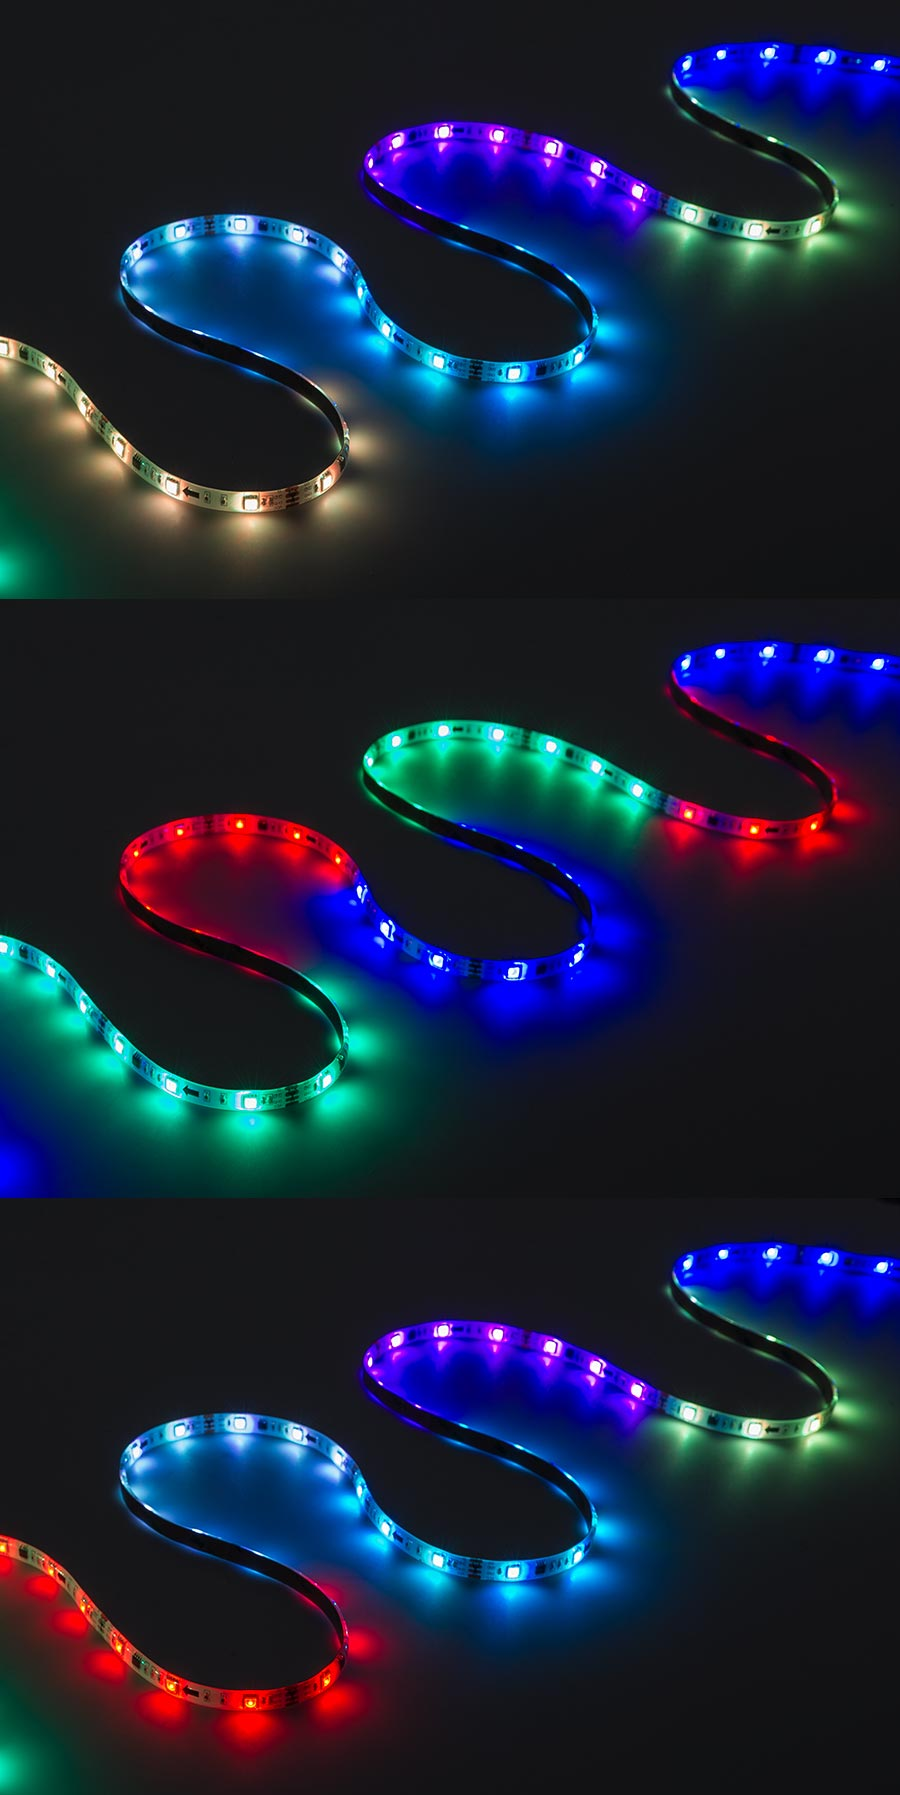 Outdoor rgb led strip lights color chasing 12v led tape light outdoor rgb led strip lights color chasing 12v led tape light waterproof 37 lumensft aloadofball Choice Image